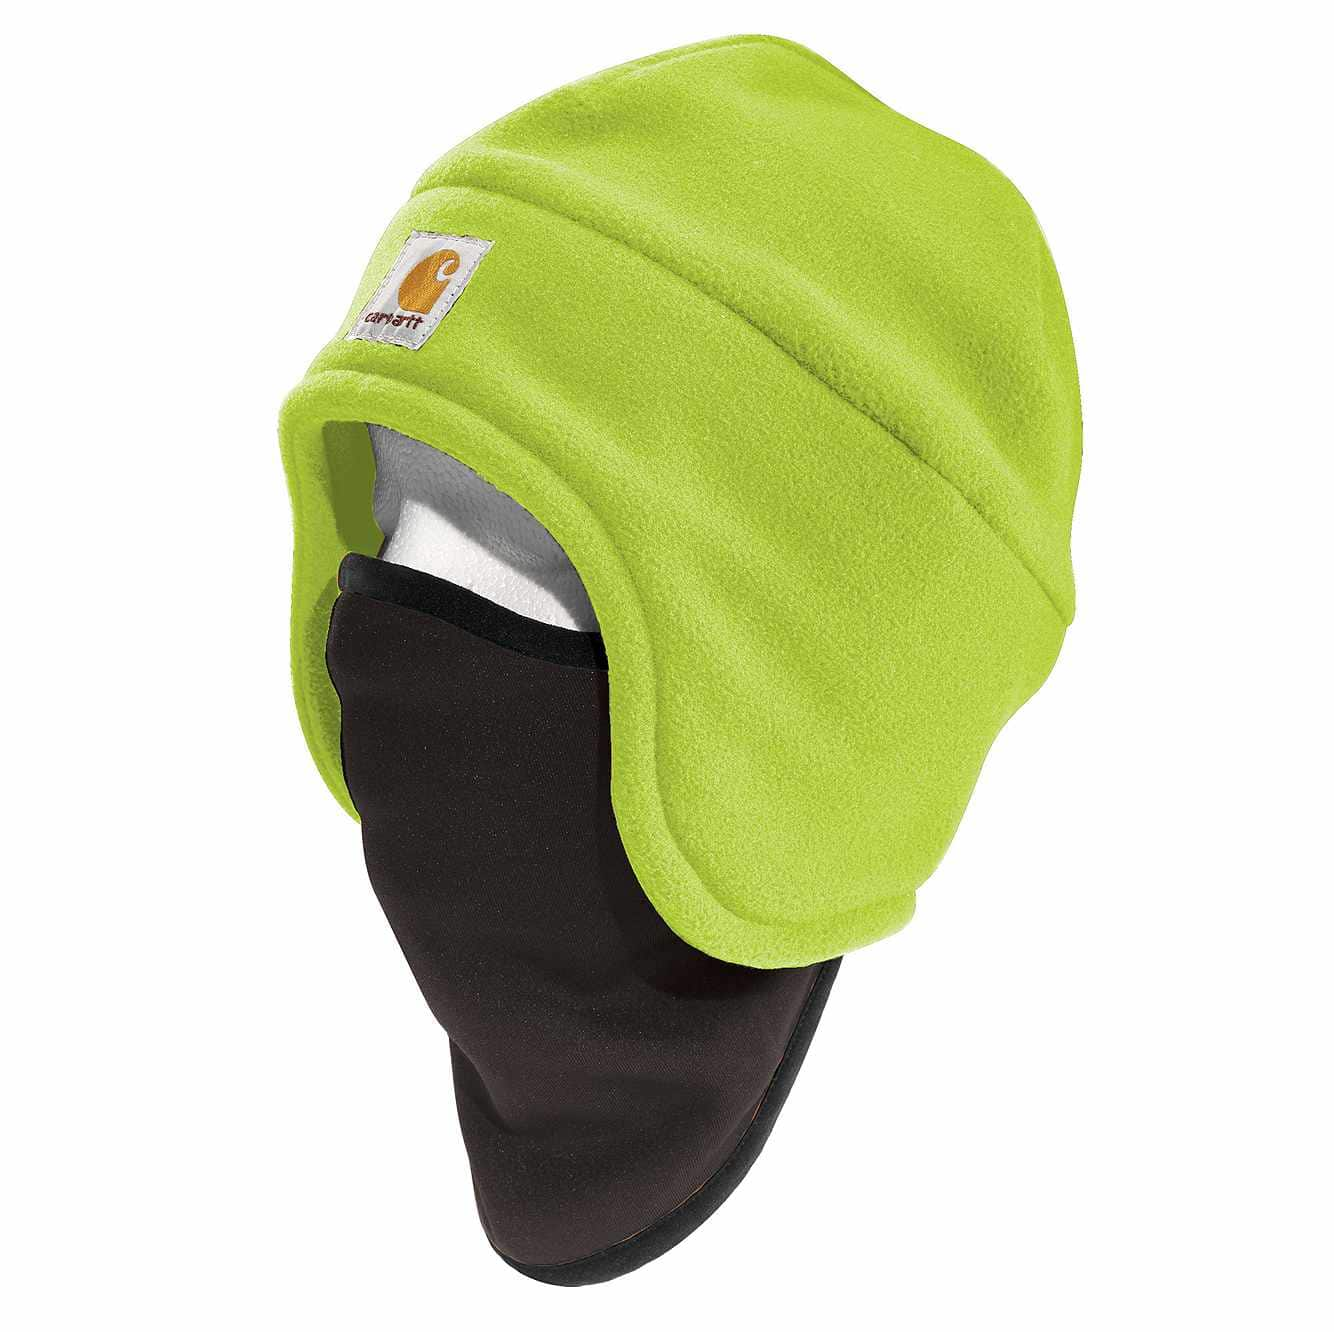 Picture of High-Visibility Color Enhanced Fleece 2-in-1 Hat in Brite Lime